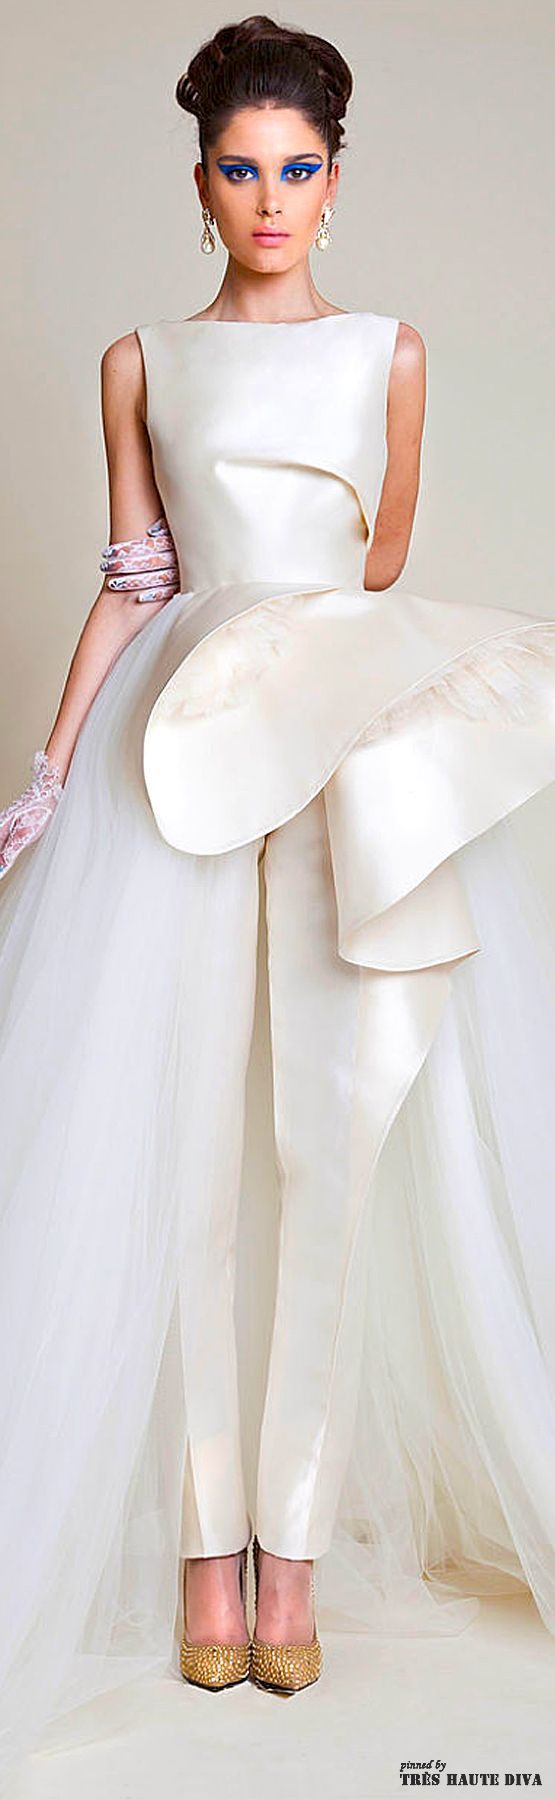 Azzi & Osta Spring 2014 Couture